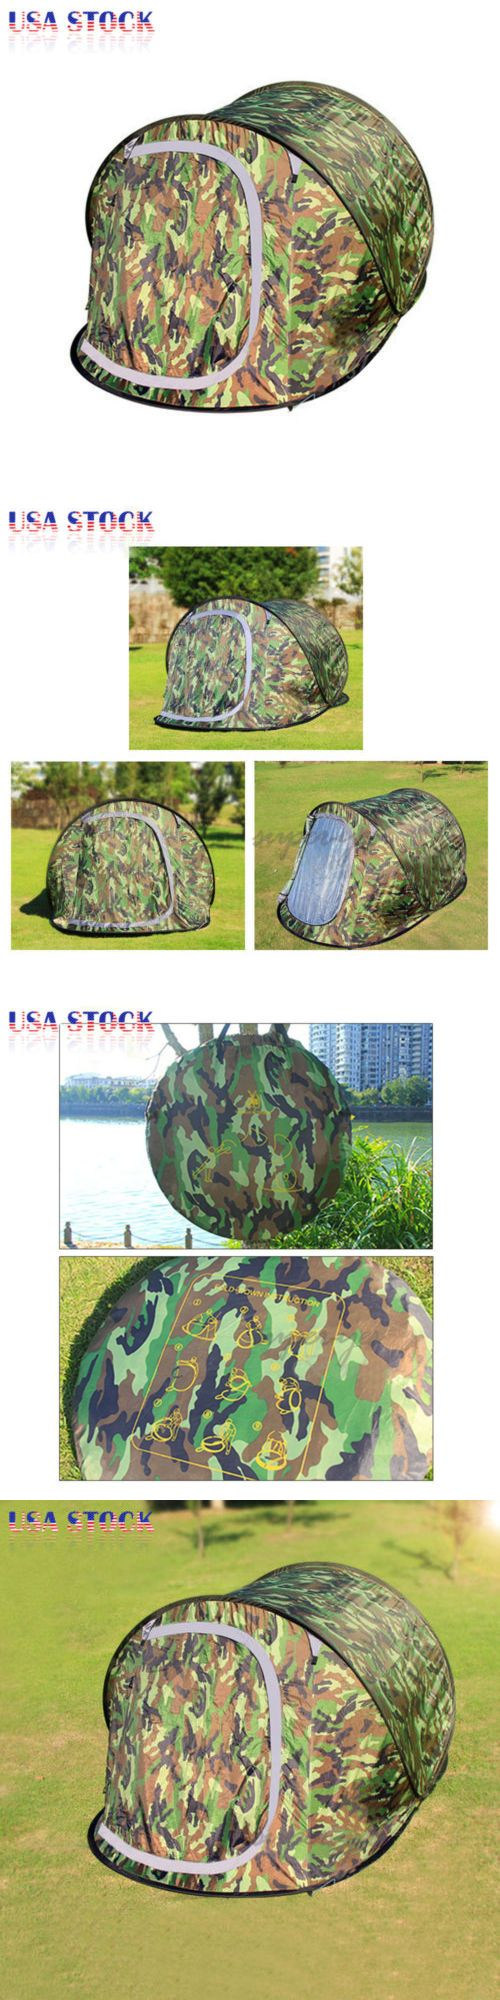 Canopies and Shelters 179011: Pop Up 2-3 Person Camping Hiking Tent Automatic Instant Beach Shelter Camouflage -> BUY IT NOW ONLY: $42.5 on eBay!